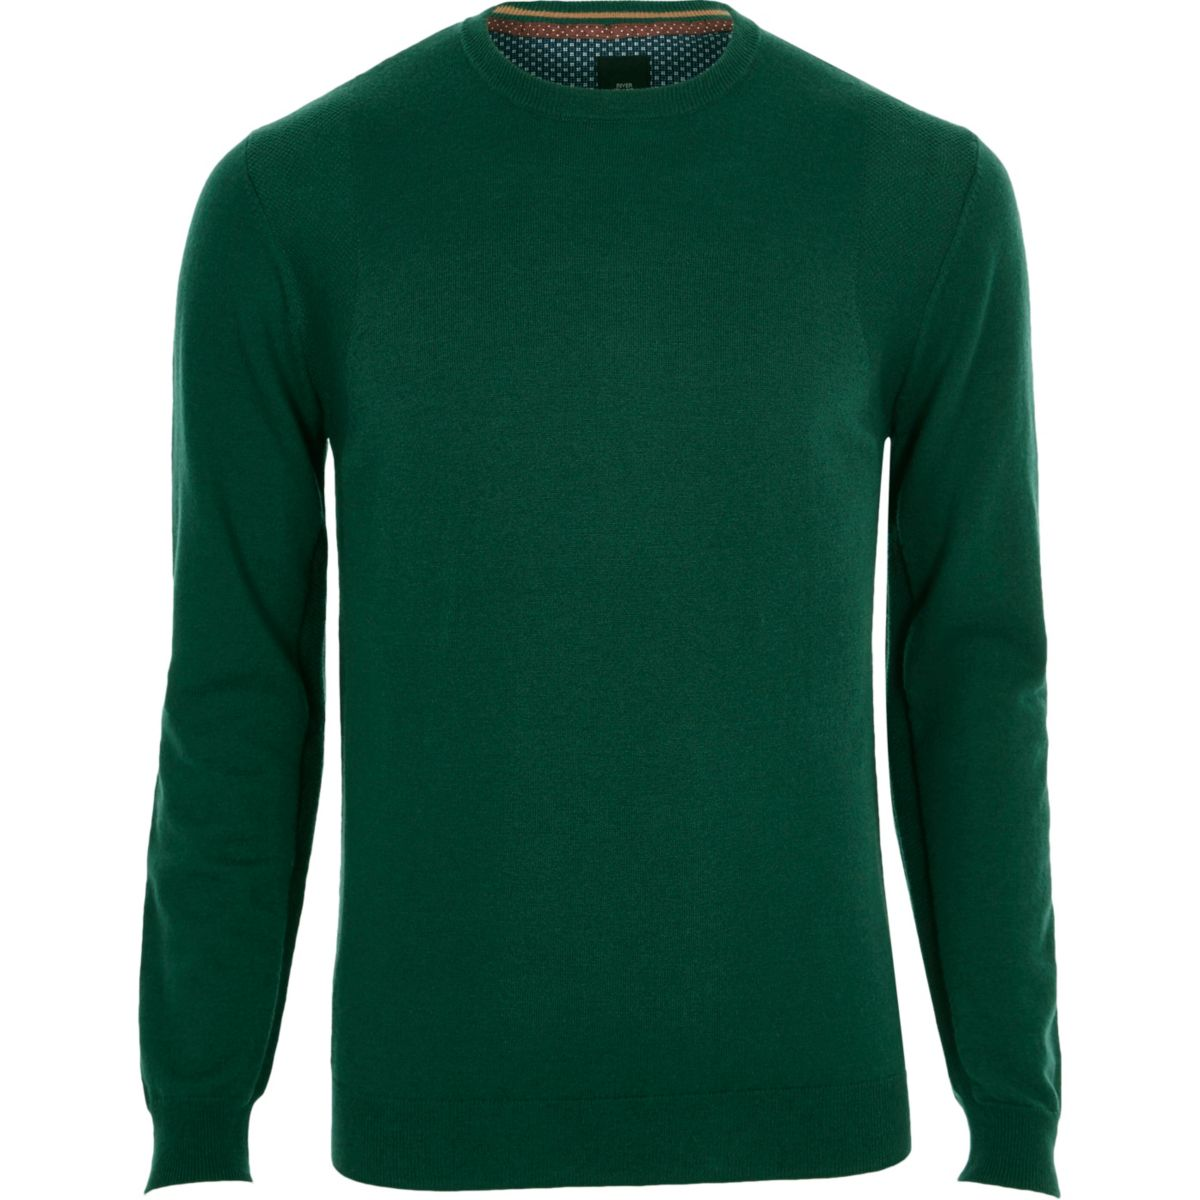 Dark green cashmere blend crew neck jumper